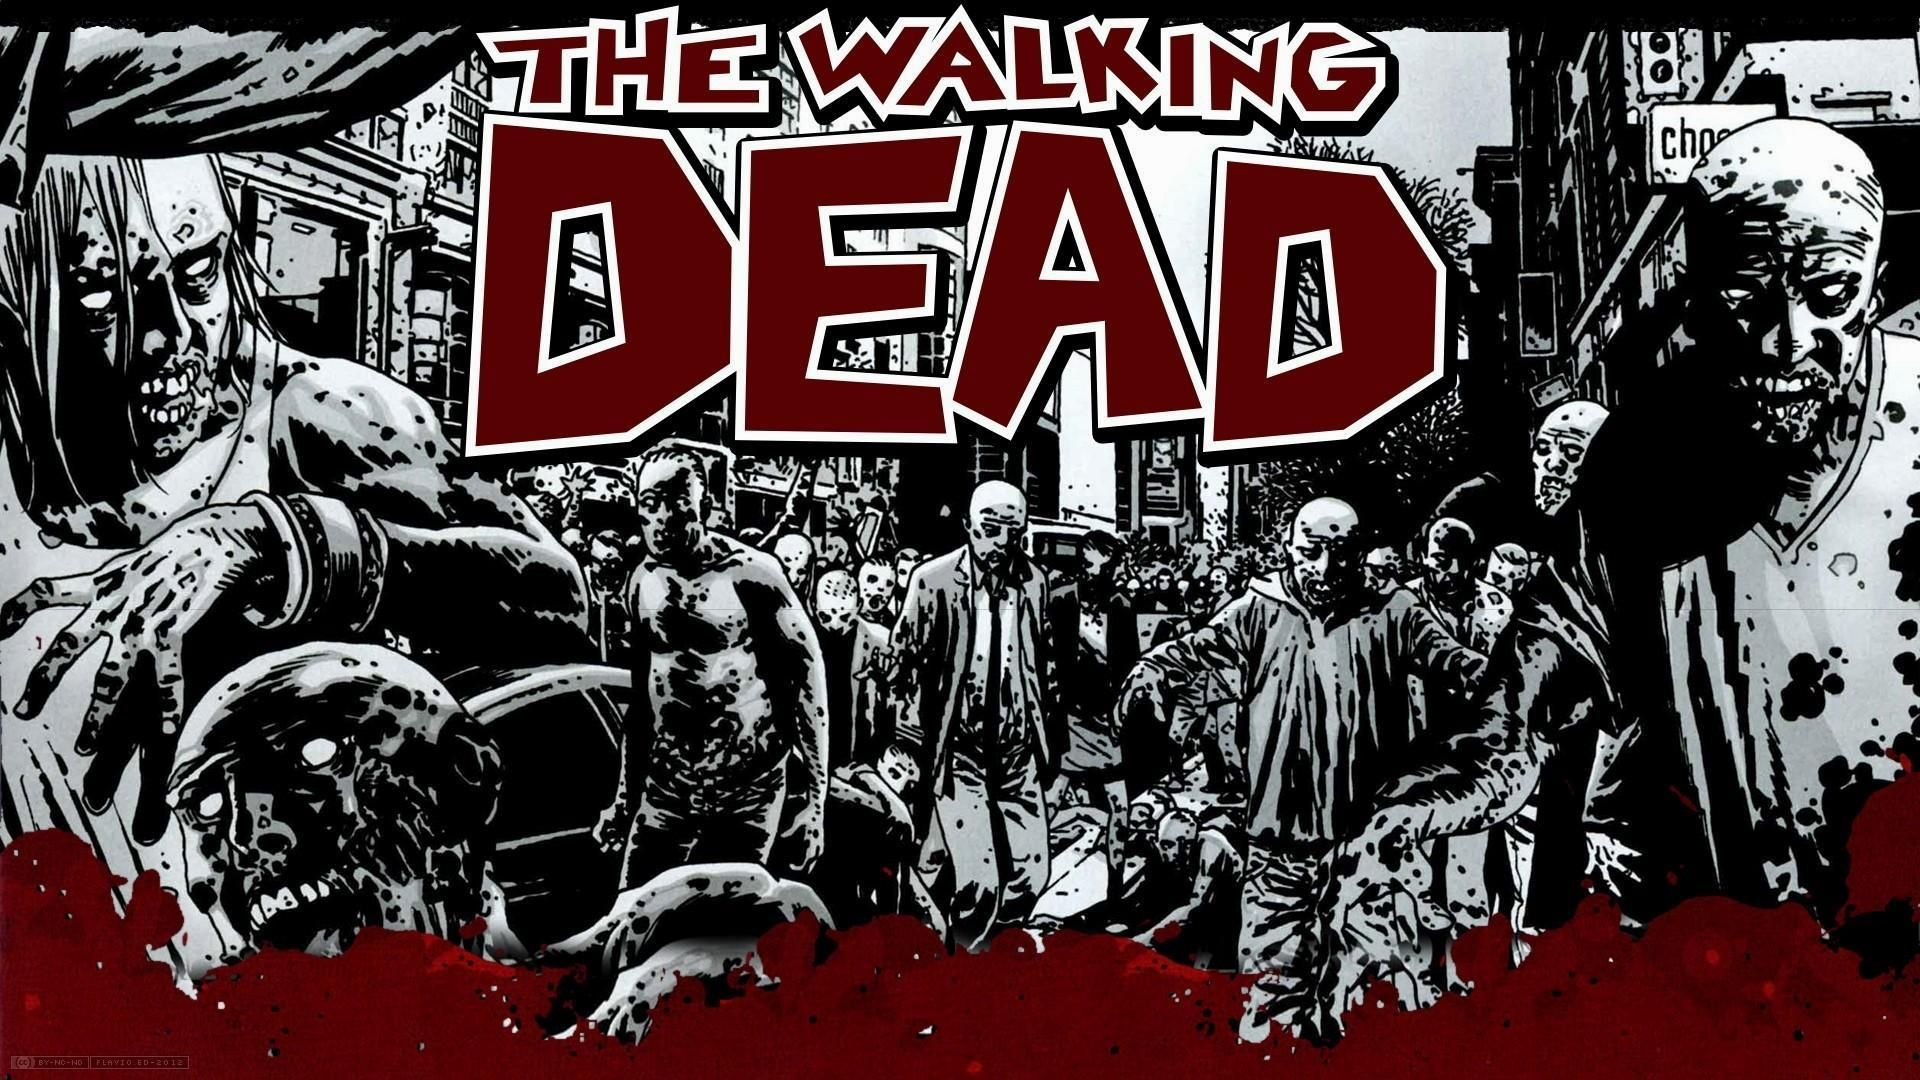 The Walking Dead Game Wallpapers Wallpaper 1920x1200 40